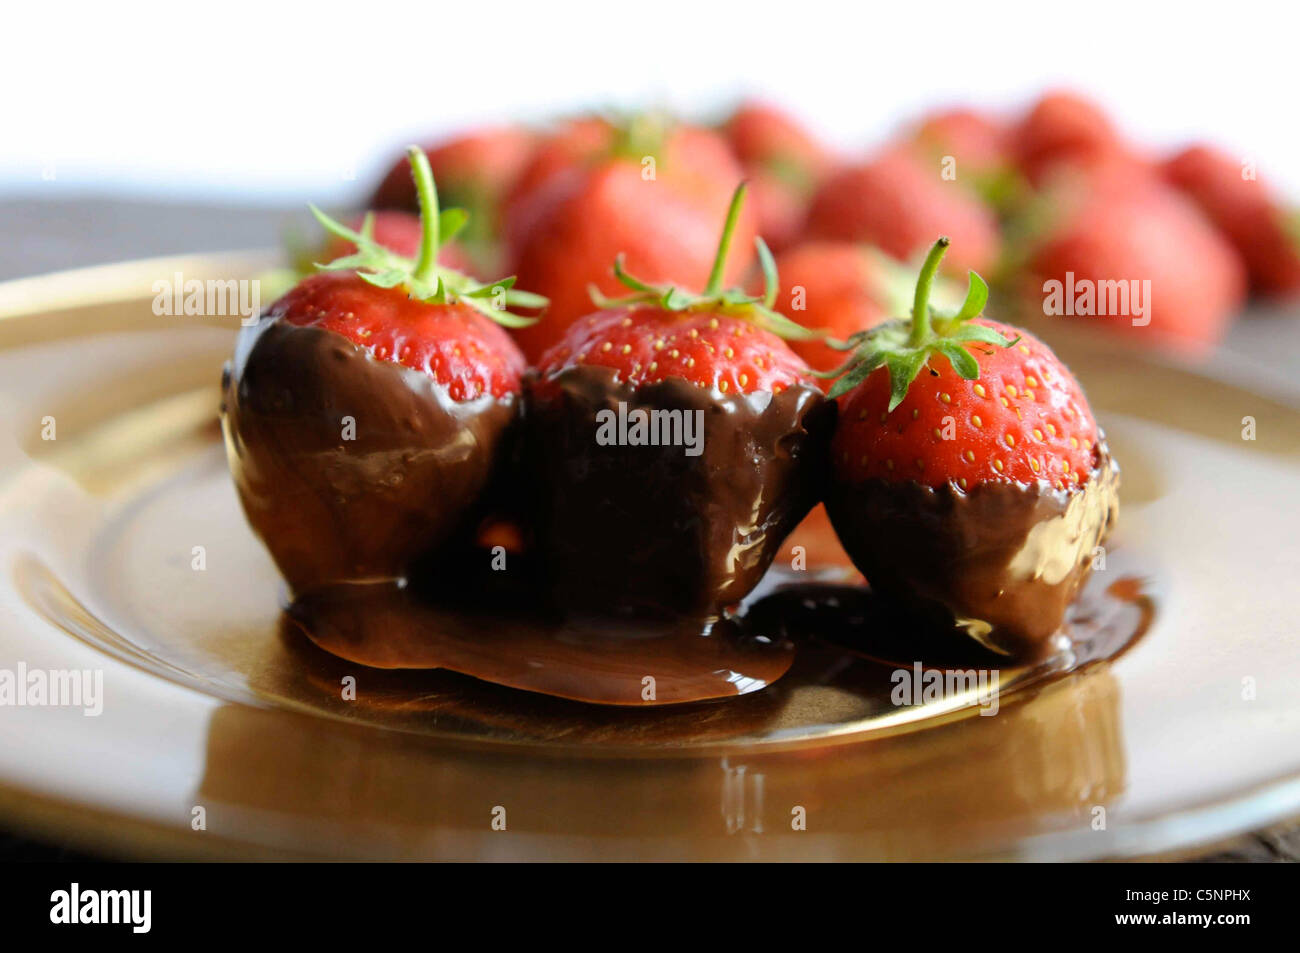 Strawberries with chocolate - Stock Image